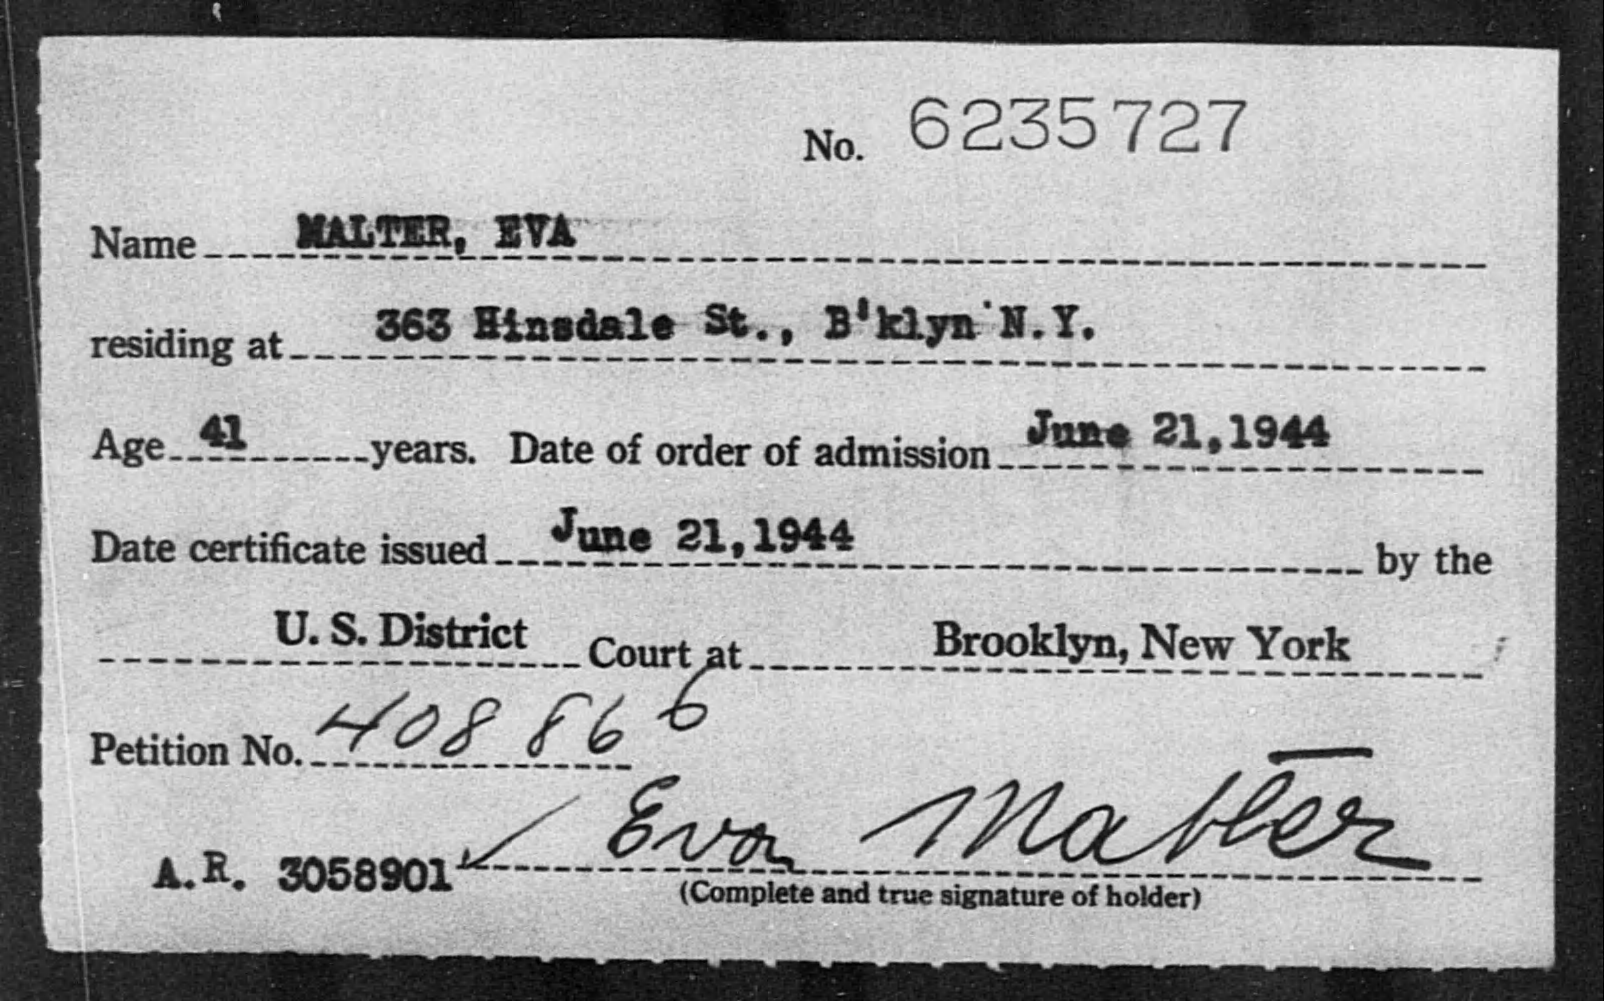 Malter, Eva - Born: [BLANK], Naturalized: 1944